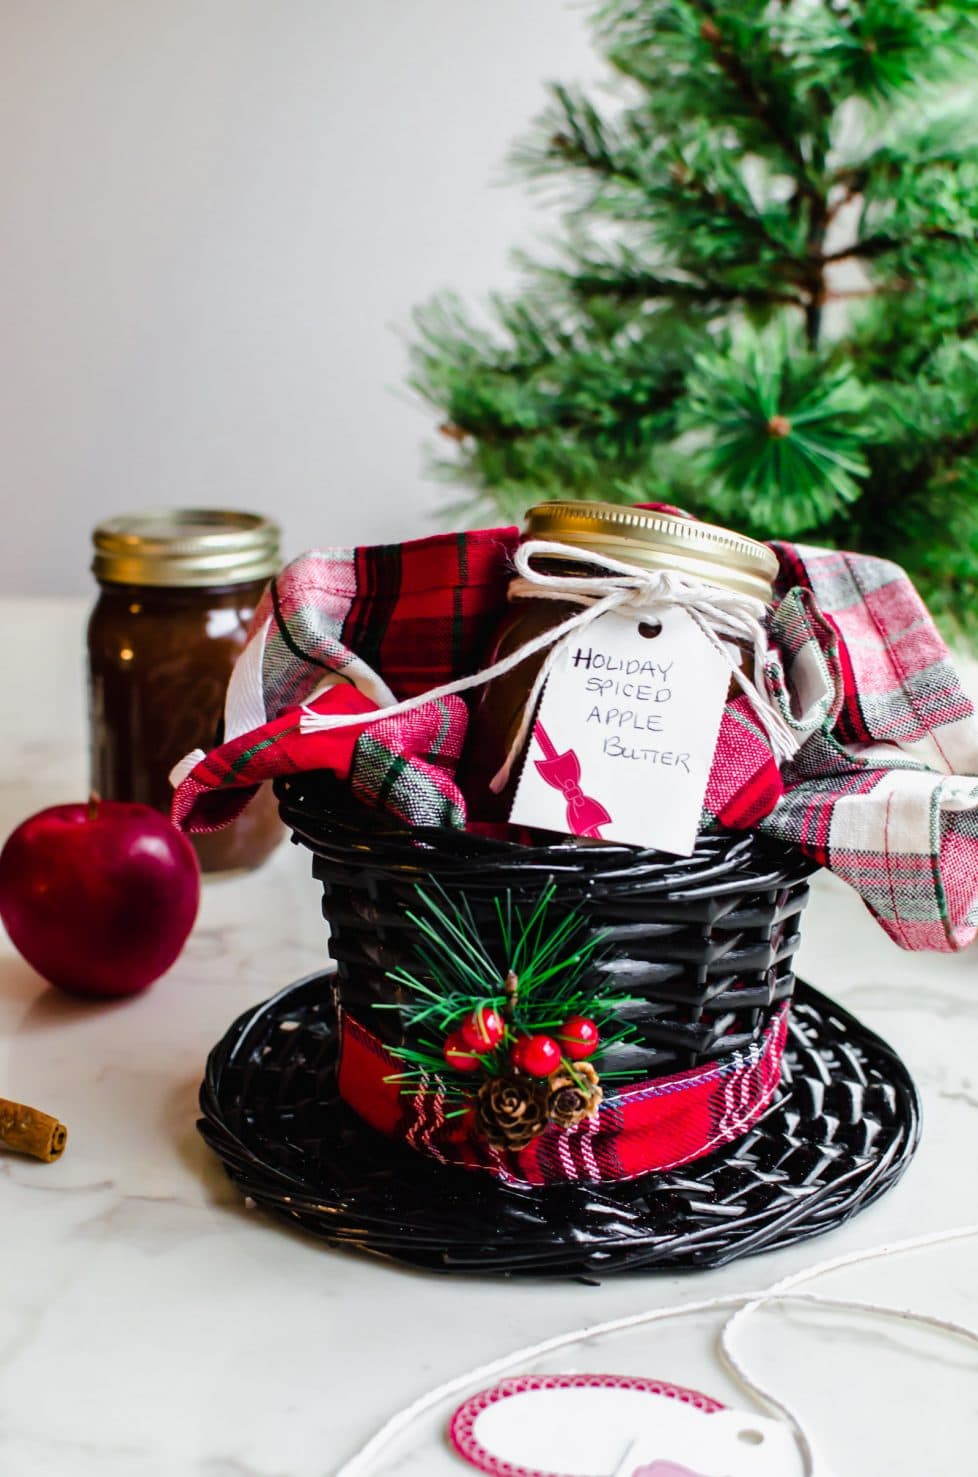 A basket shaped like a black hat with a plaid dish towel and jar of apple butter inside.